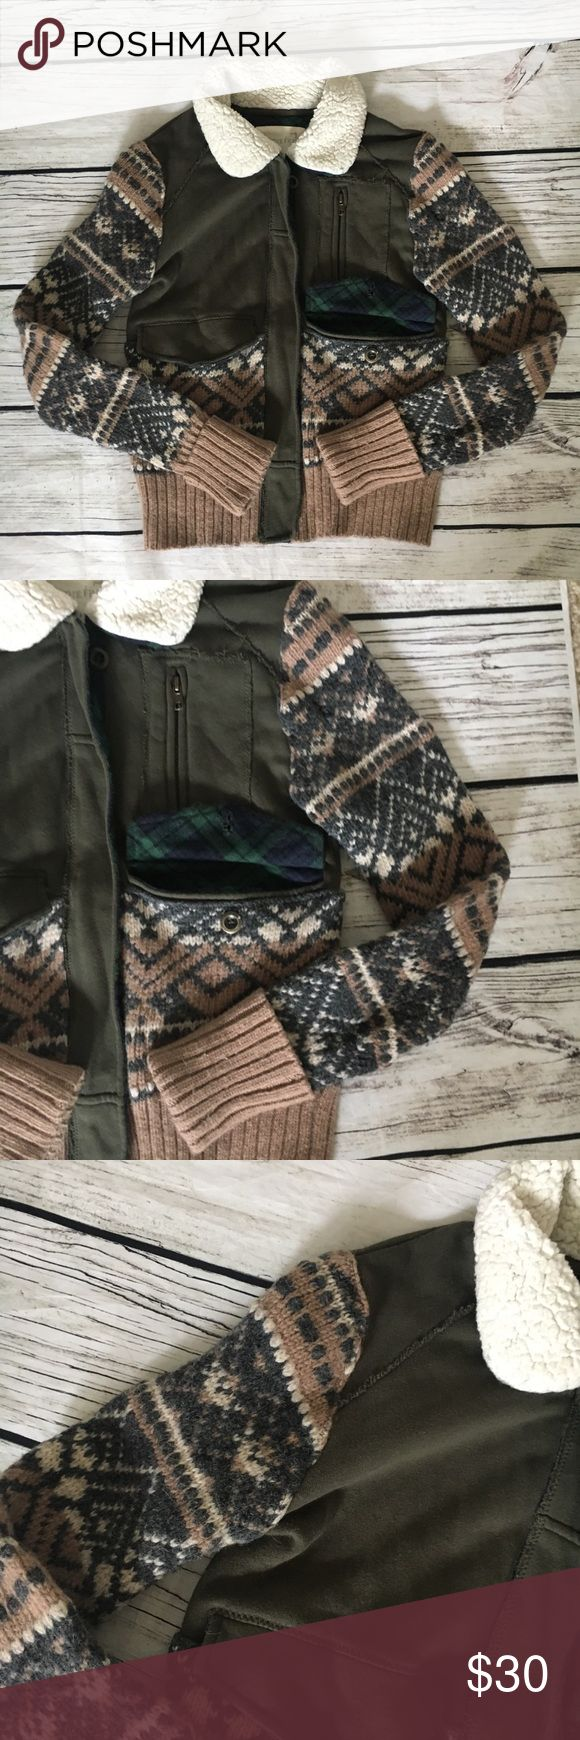 """We The Free Women's Knit Zip Up Sweater Good preowned condition showing normal signs of wear. Measures 18"""" armpit to armpit and 22"""" from shoulder to bottom hem. Free People Sweaters Cardigans"""